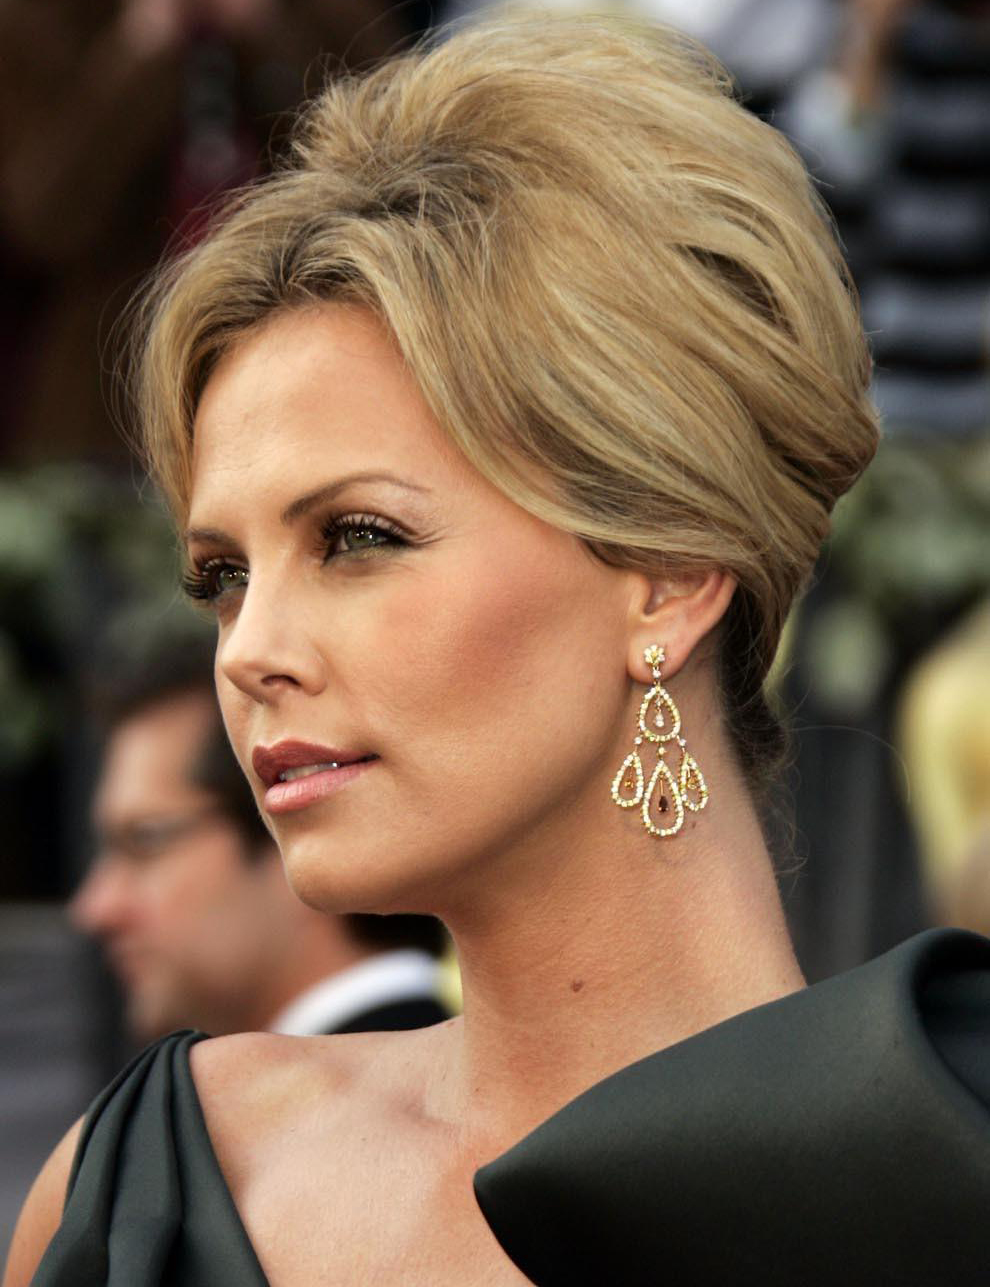 Cute Charlize Theron Beautiful Look Free Laptop Deskop Background Hd Pictures